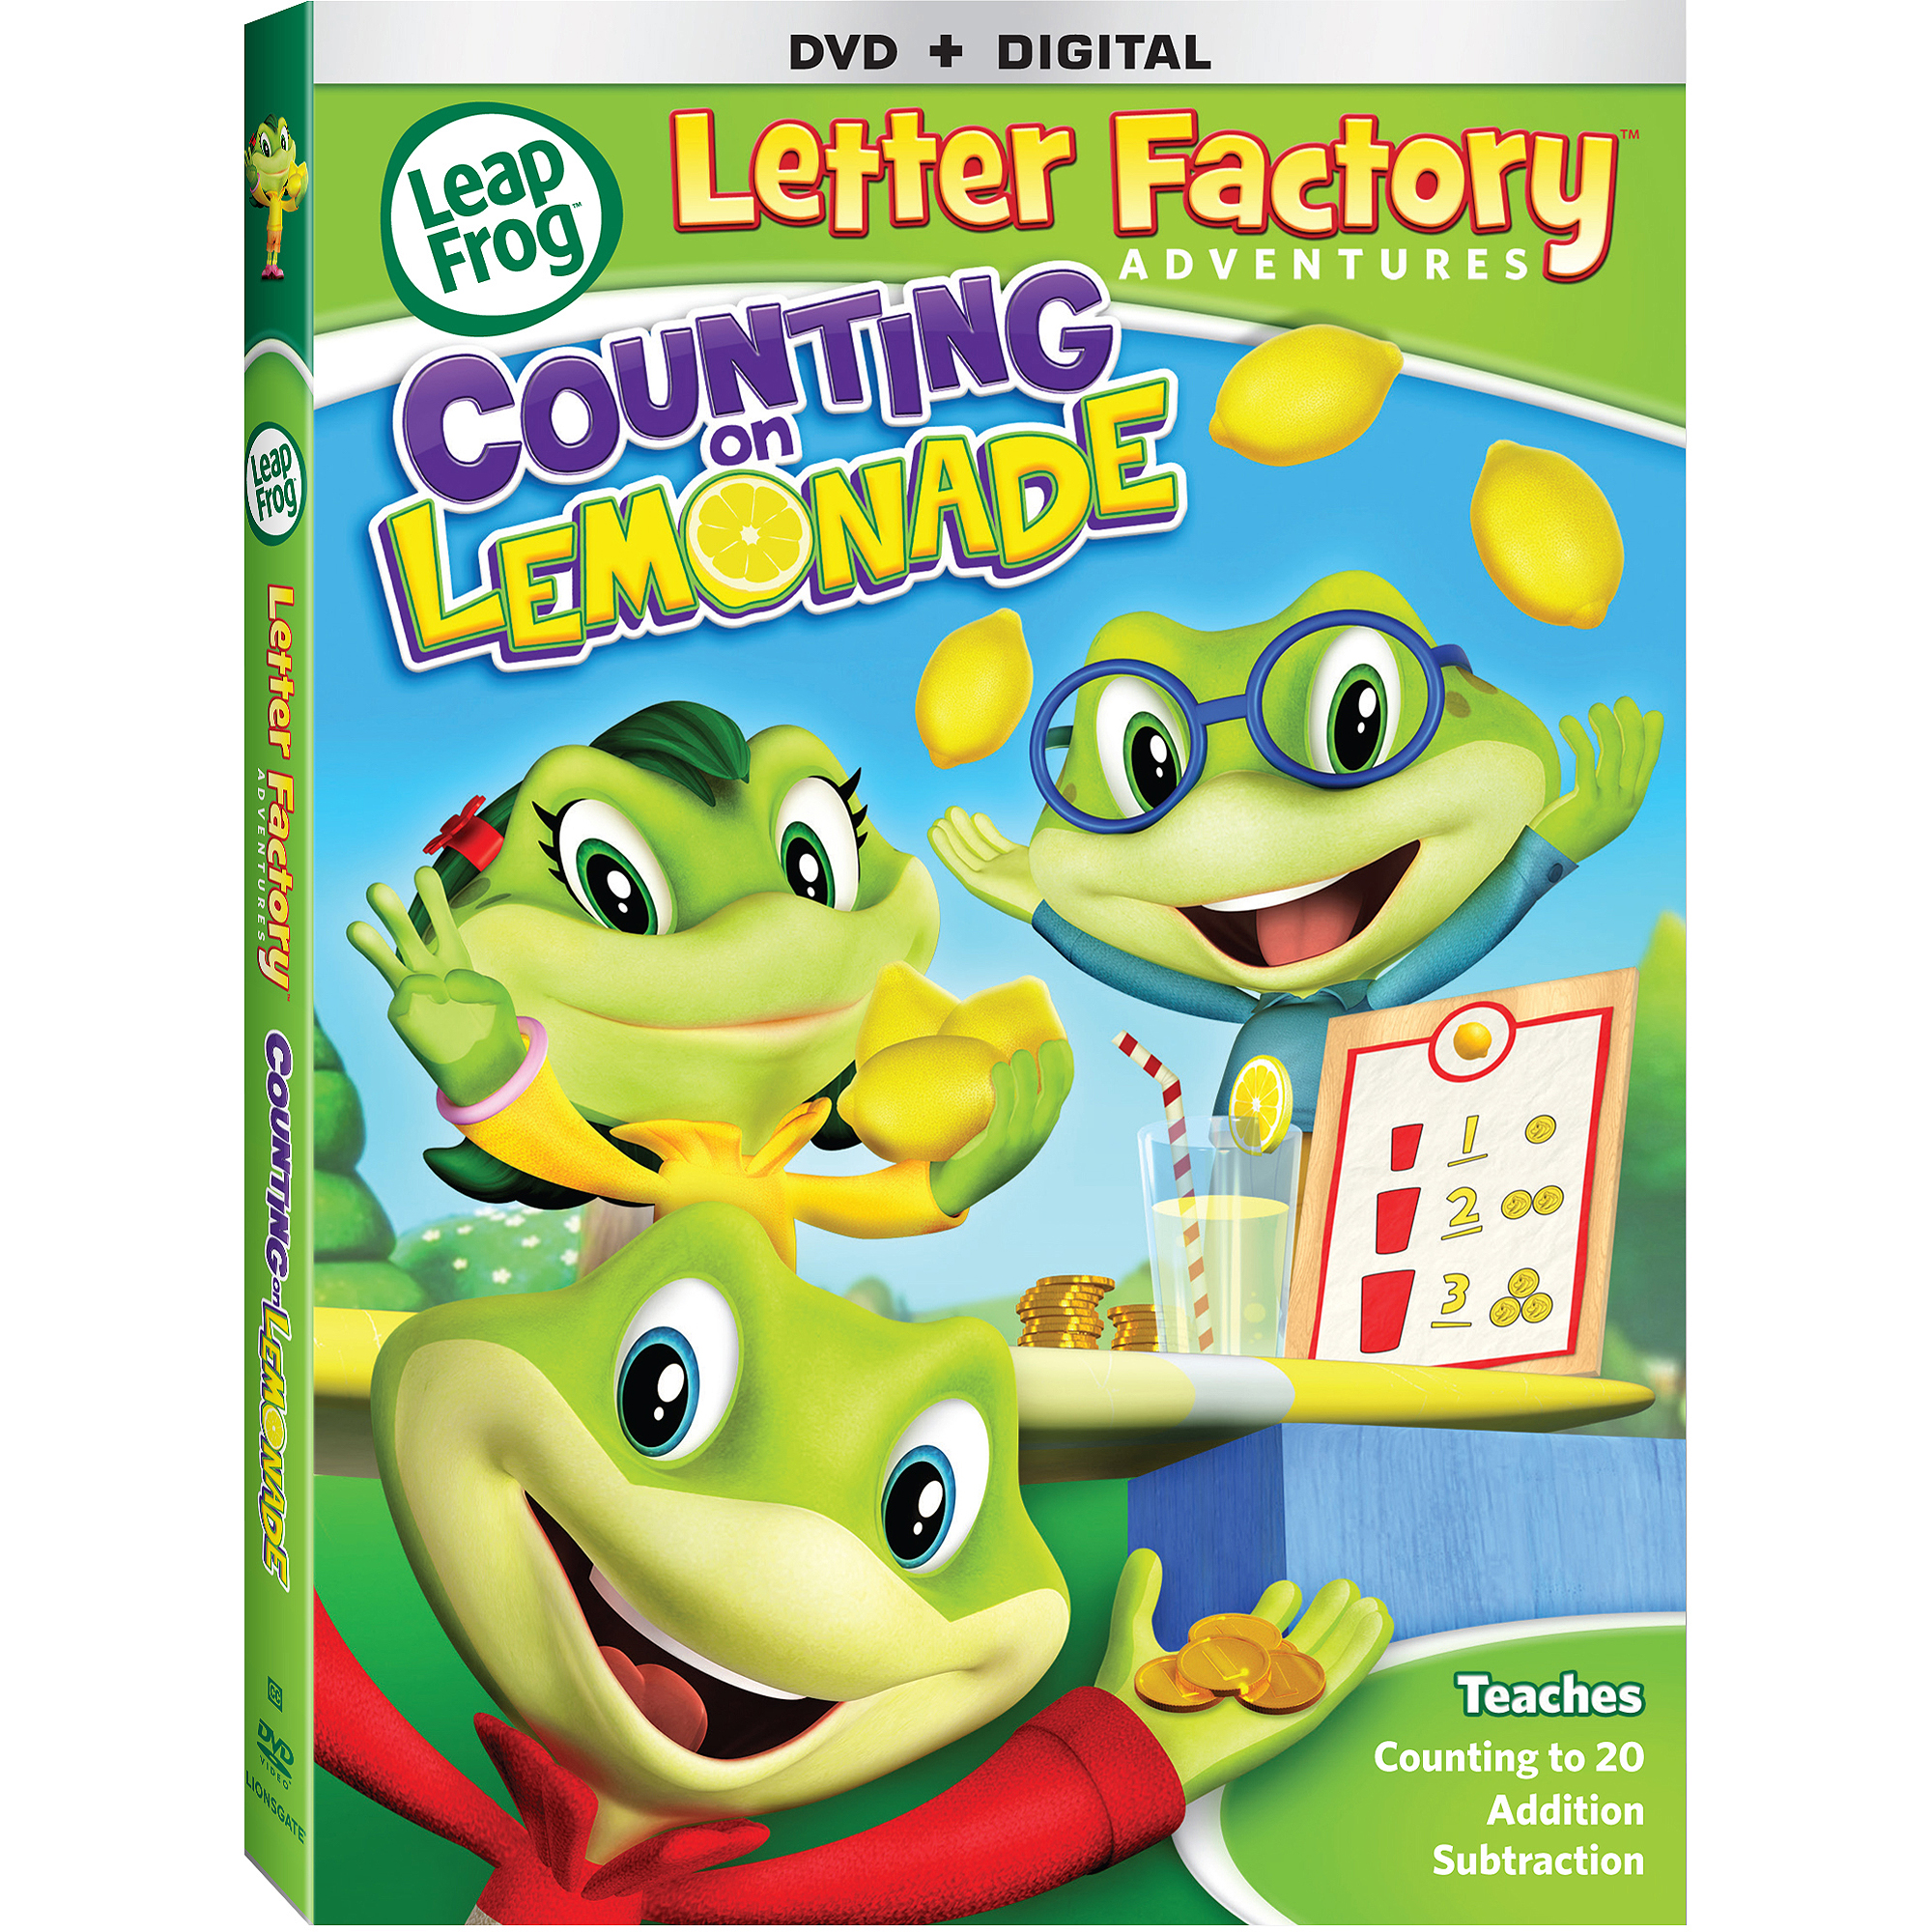 LeapFrog: Letter Factory Adventures - Counting On Lemonade (DVD + Digital Copy) (With INSTAWATCH) (Widescreen)